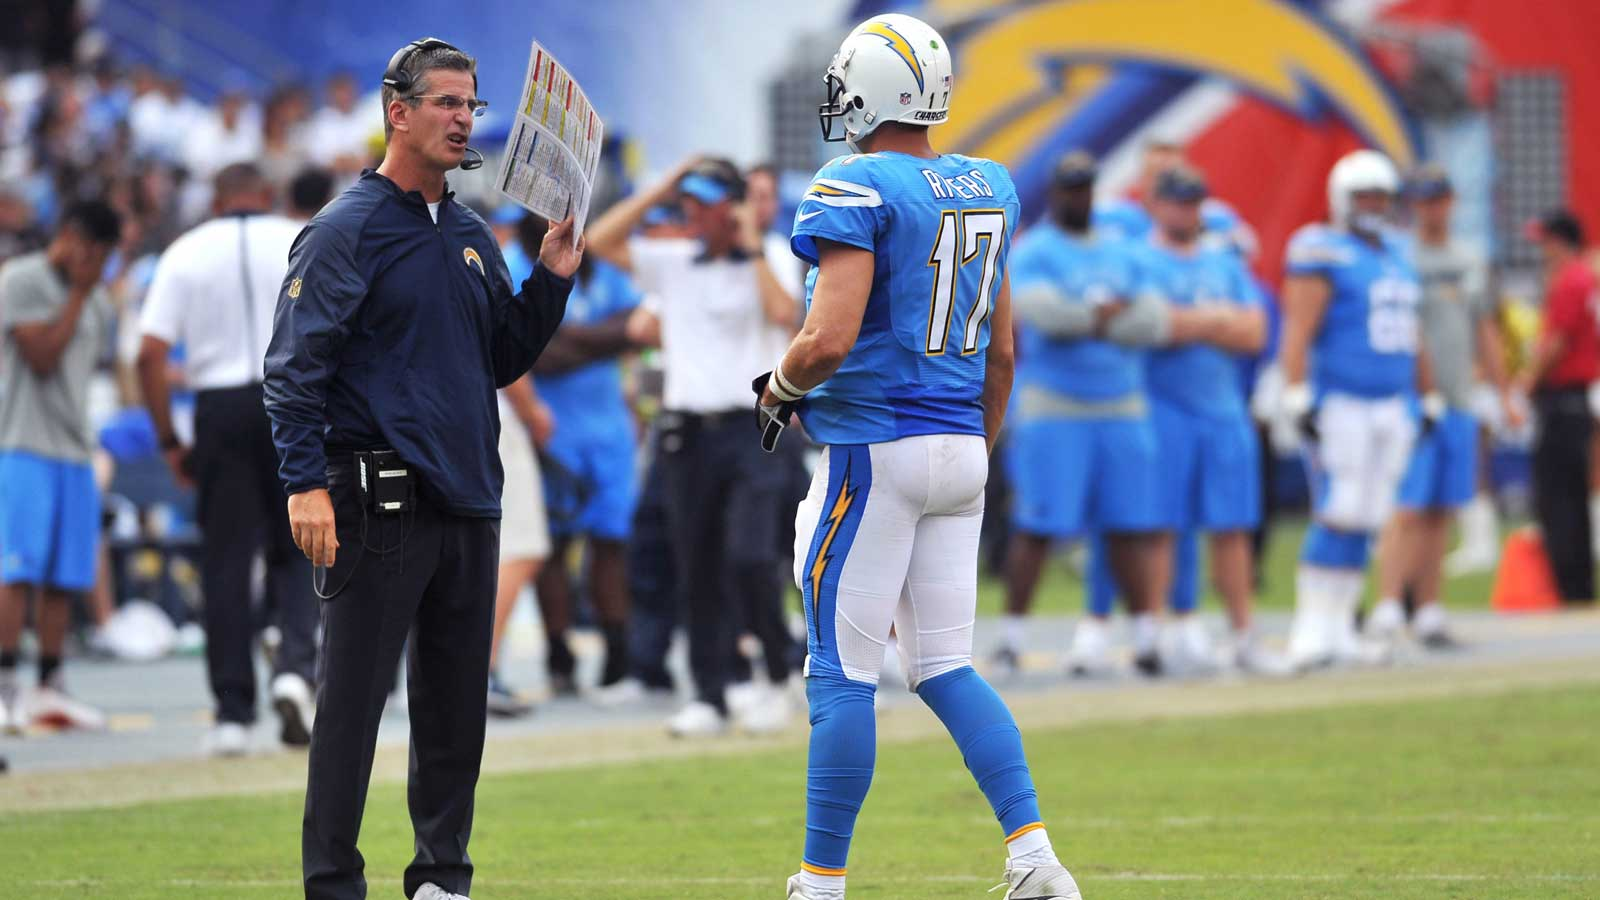 Embarrassed for 3 quarters, Chargers lose 37-29 to Raiders